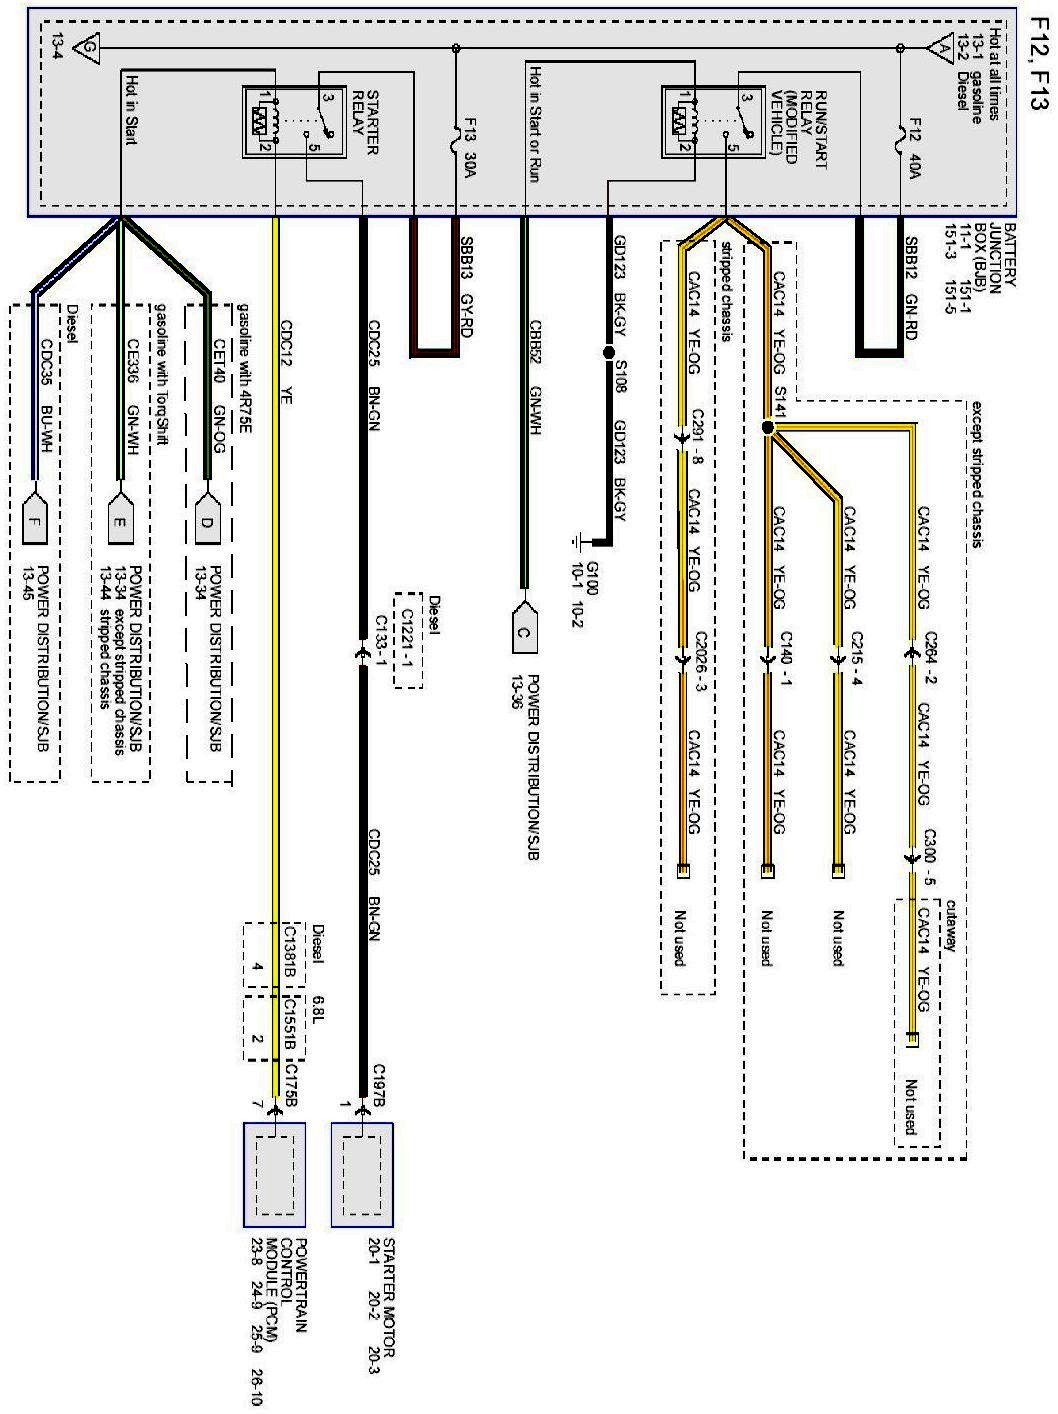 Where Can I Get A Wiring Diagram For A 2010 E 10 Engine And 31 5 Four Winds